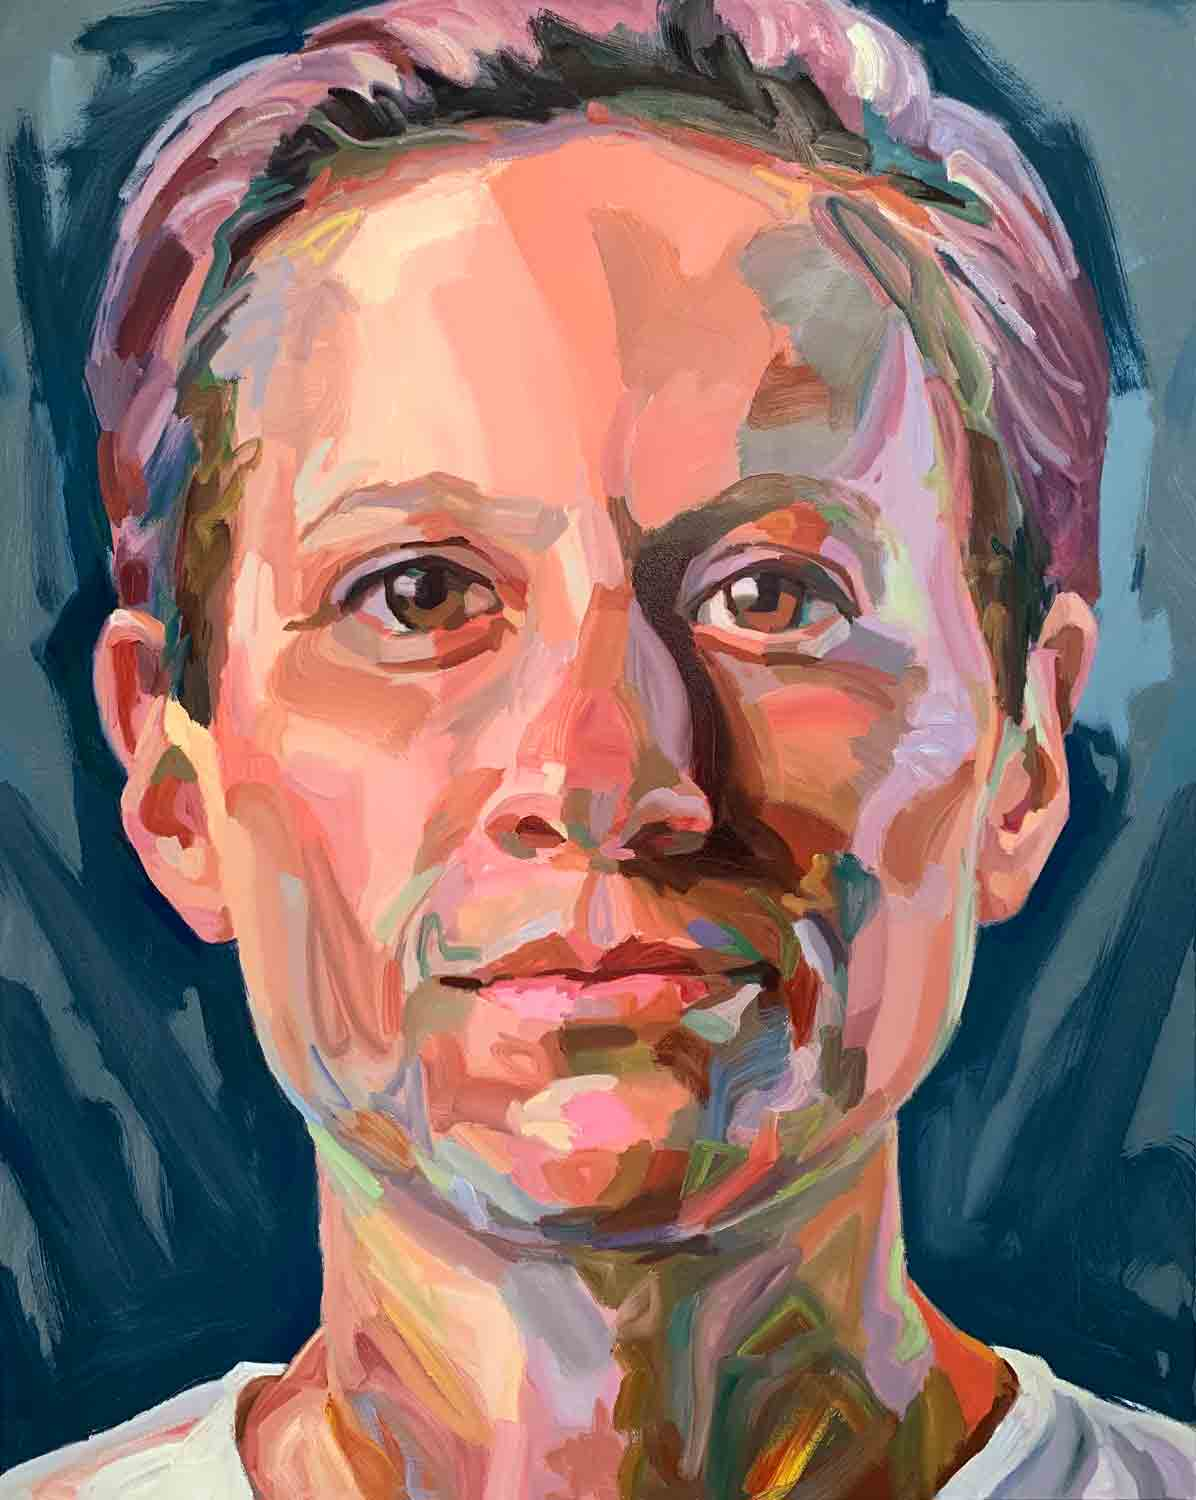 Megan Rapinoe, 2019 Oil on canvas, 48x60""